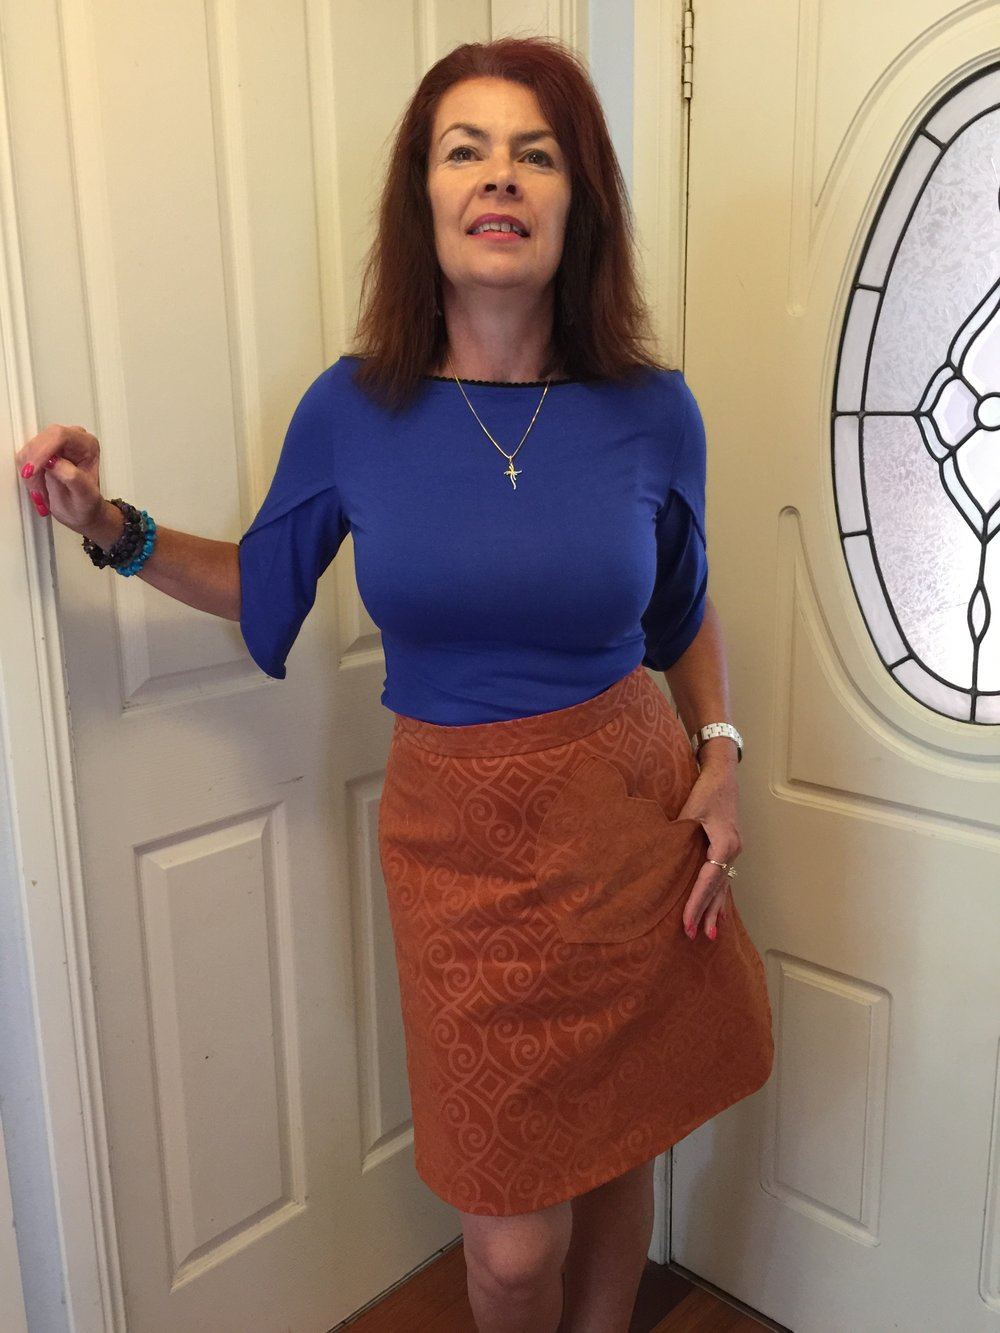 This blue knit top and A line skirt will be available for order too!